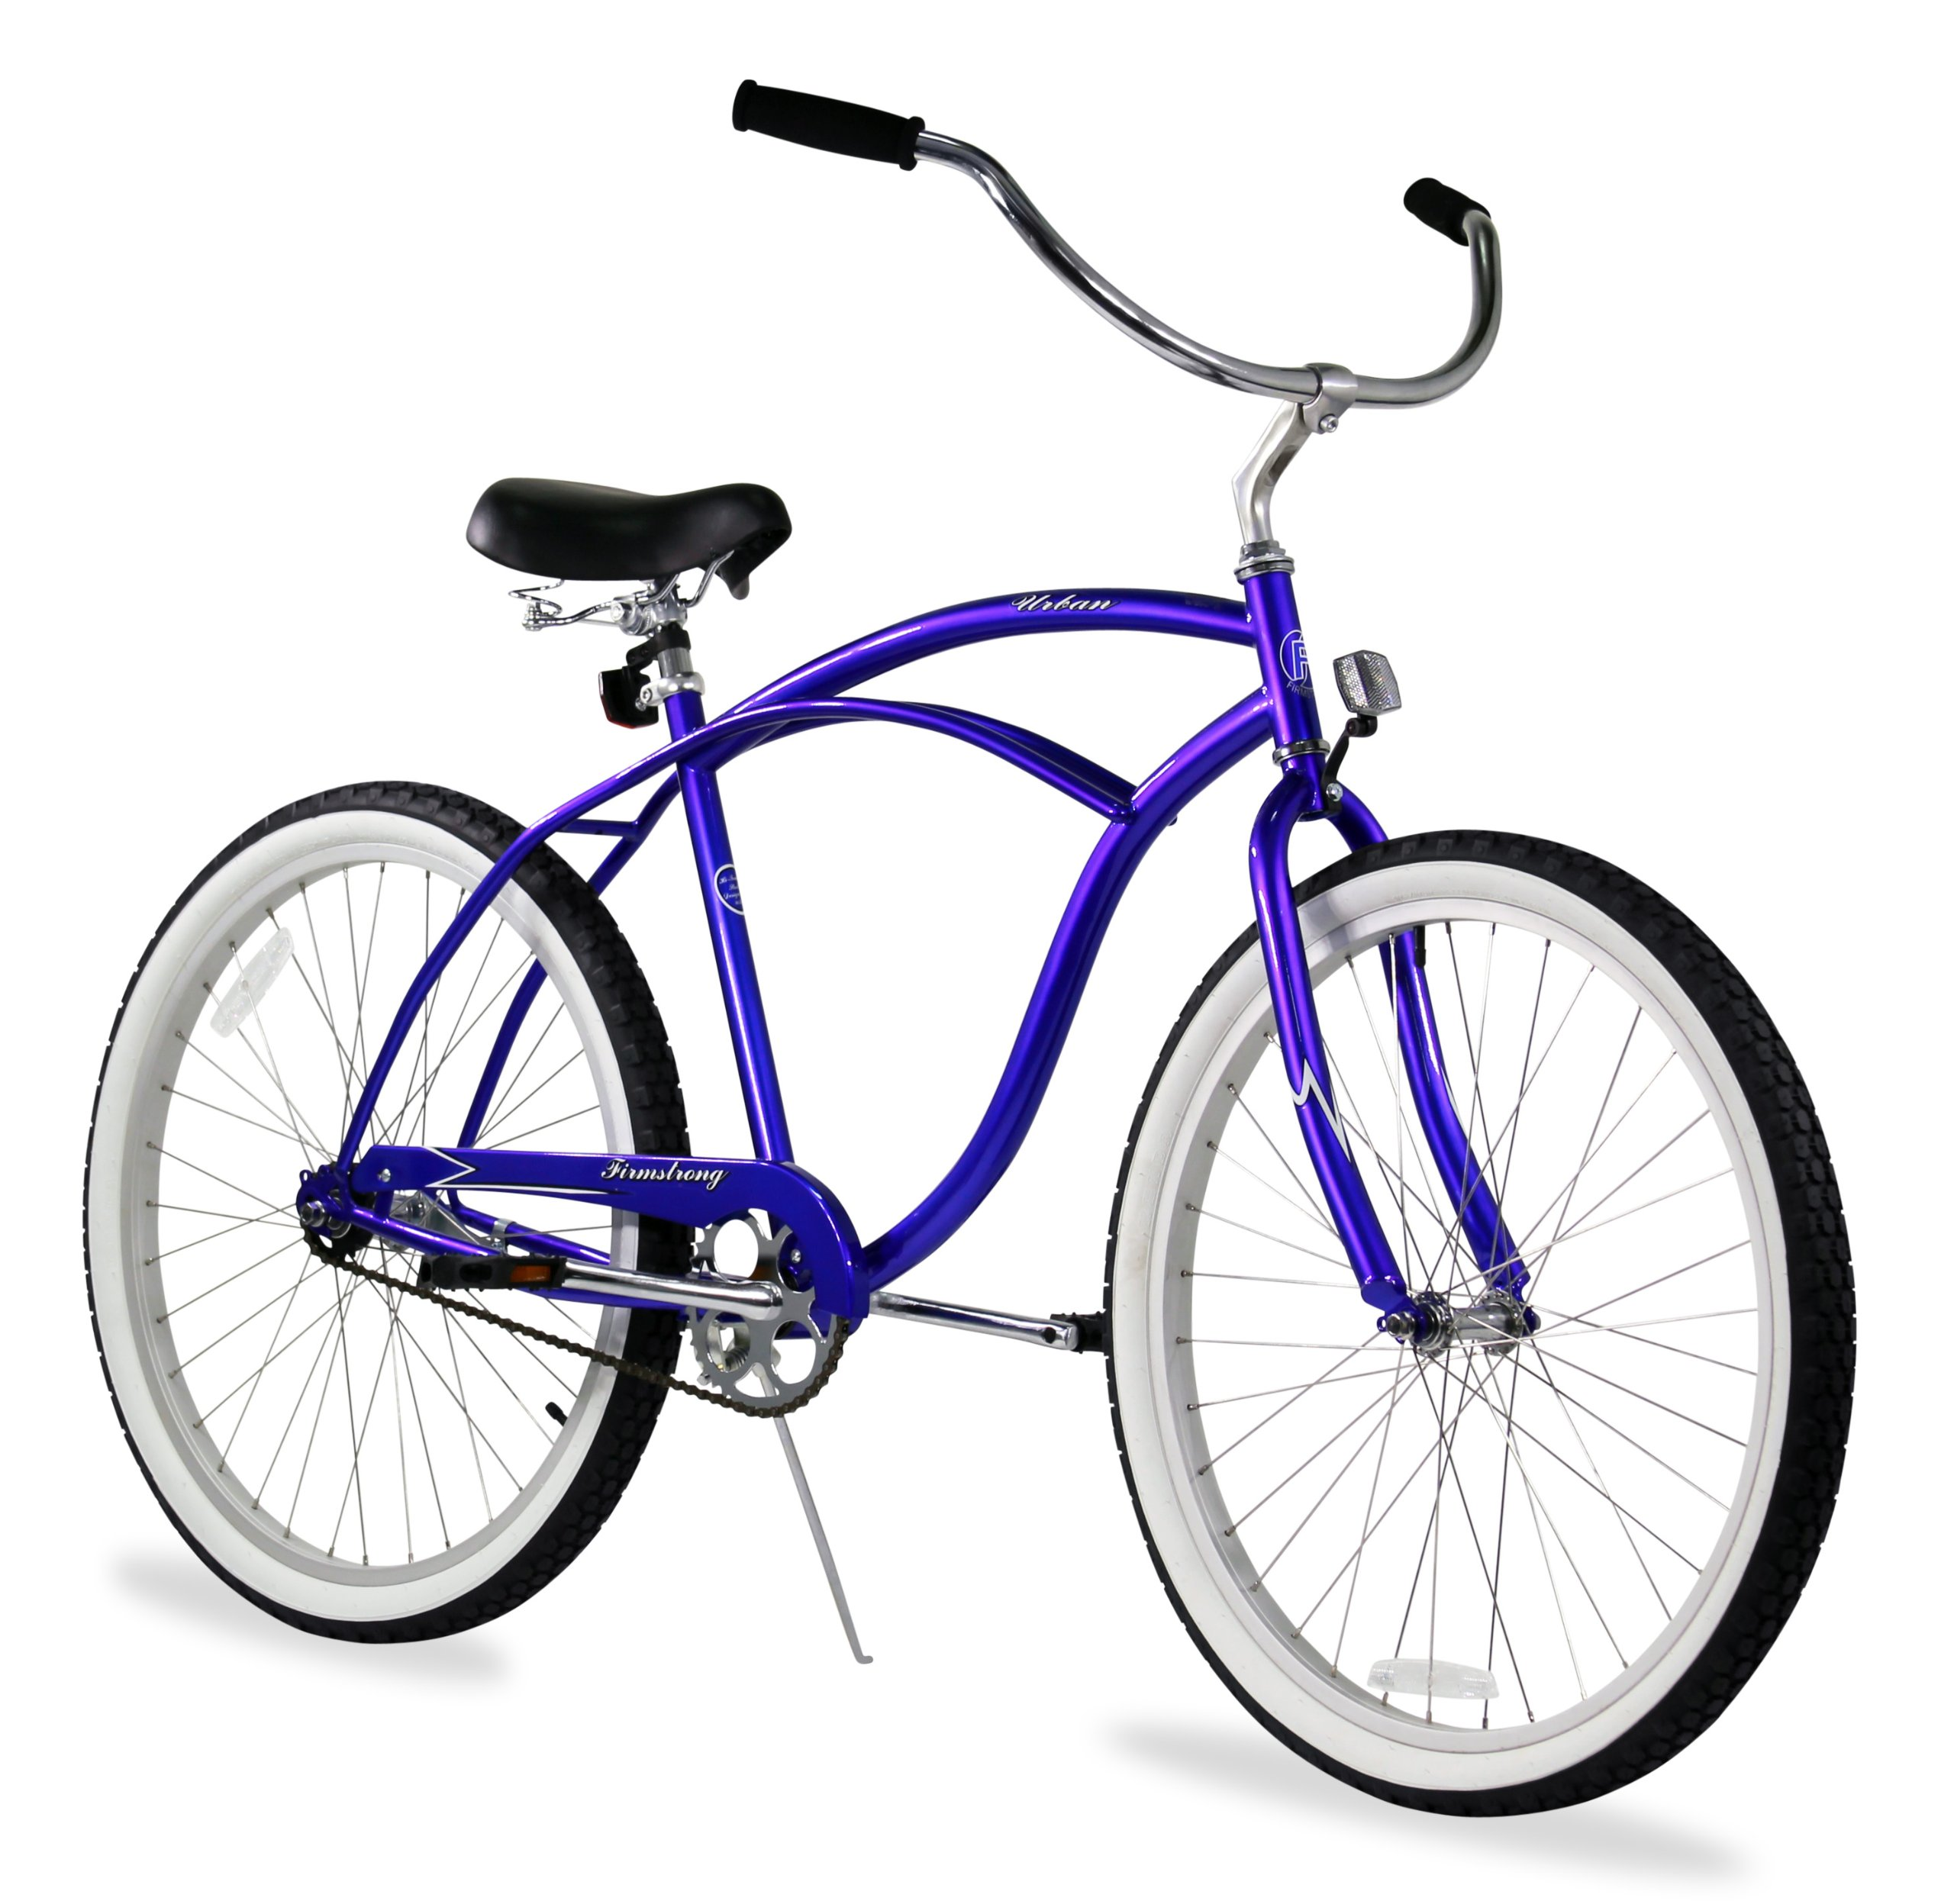 Firmstrong Urban Man Single Speed Beach Cruiser Bicycle, 24-Inch, Royal Blue by Firmstrong